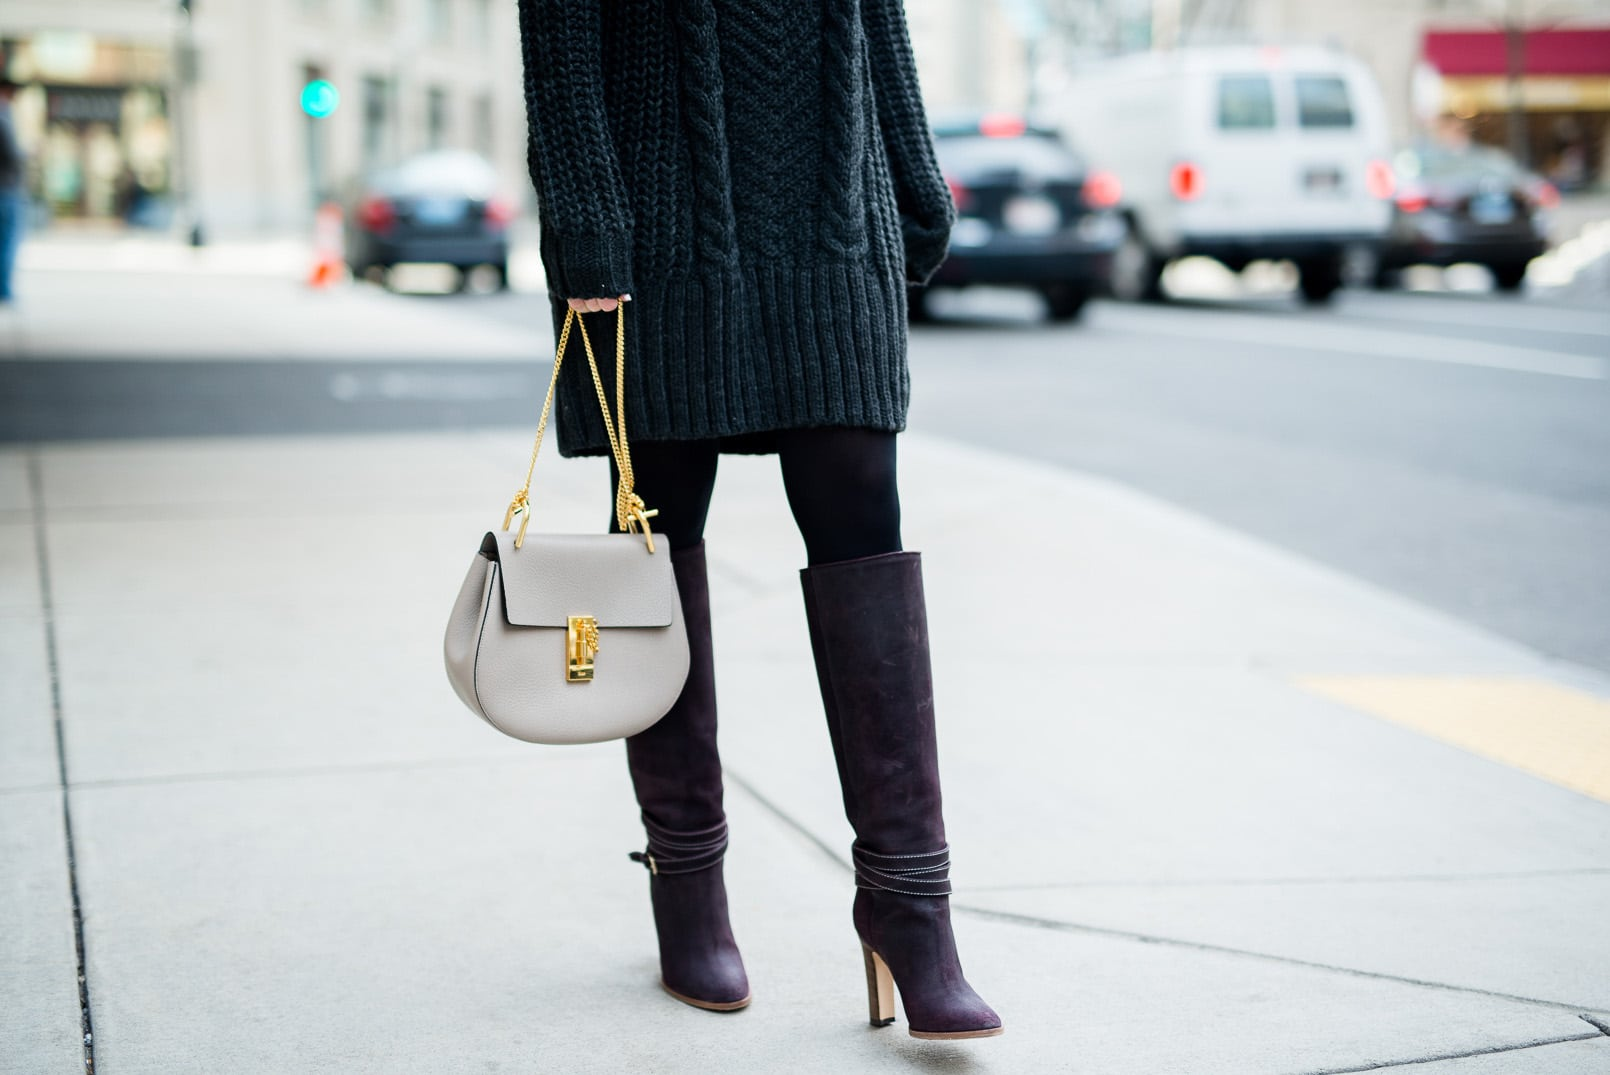 Pam Hetlinger wearing a h&m turtleneck sweater dress, club monaco buckle knee-high boot, celine sunglasses, grey chloe drew bag, and black tights